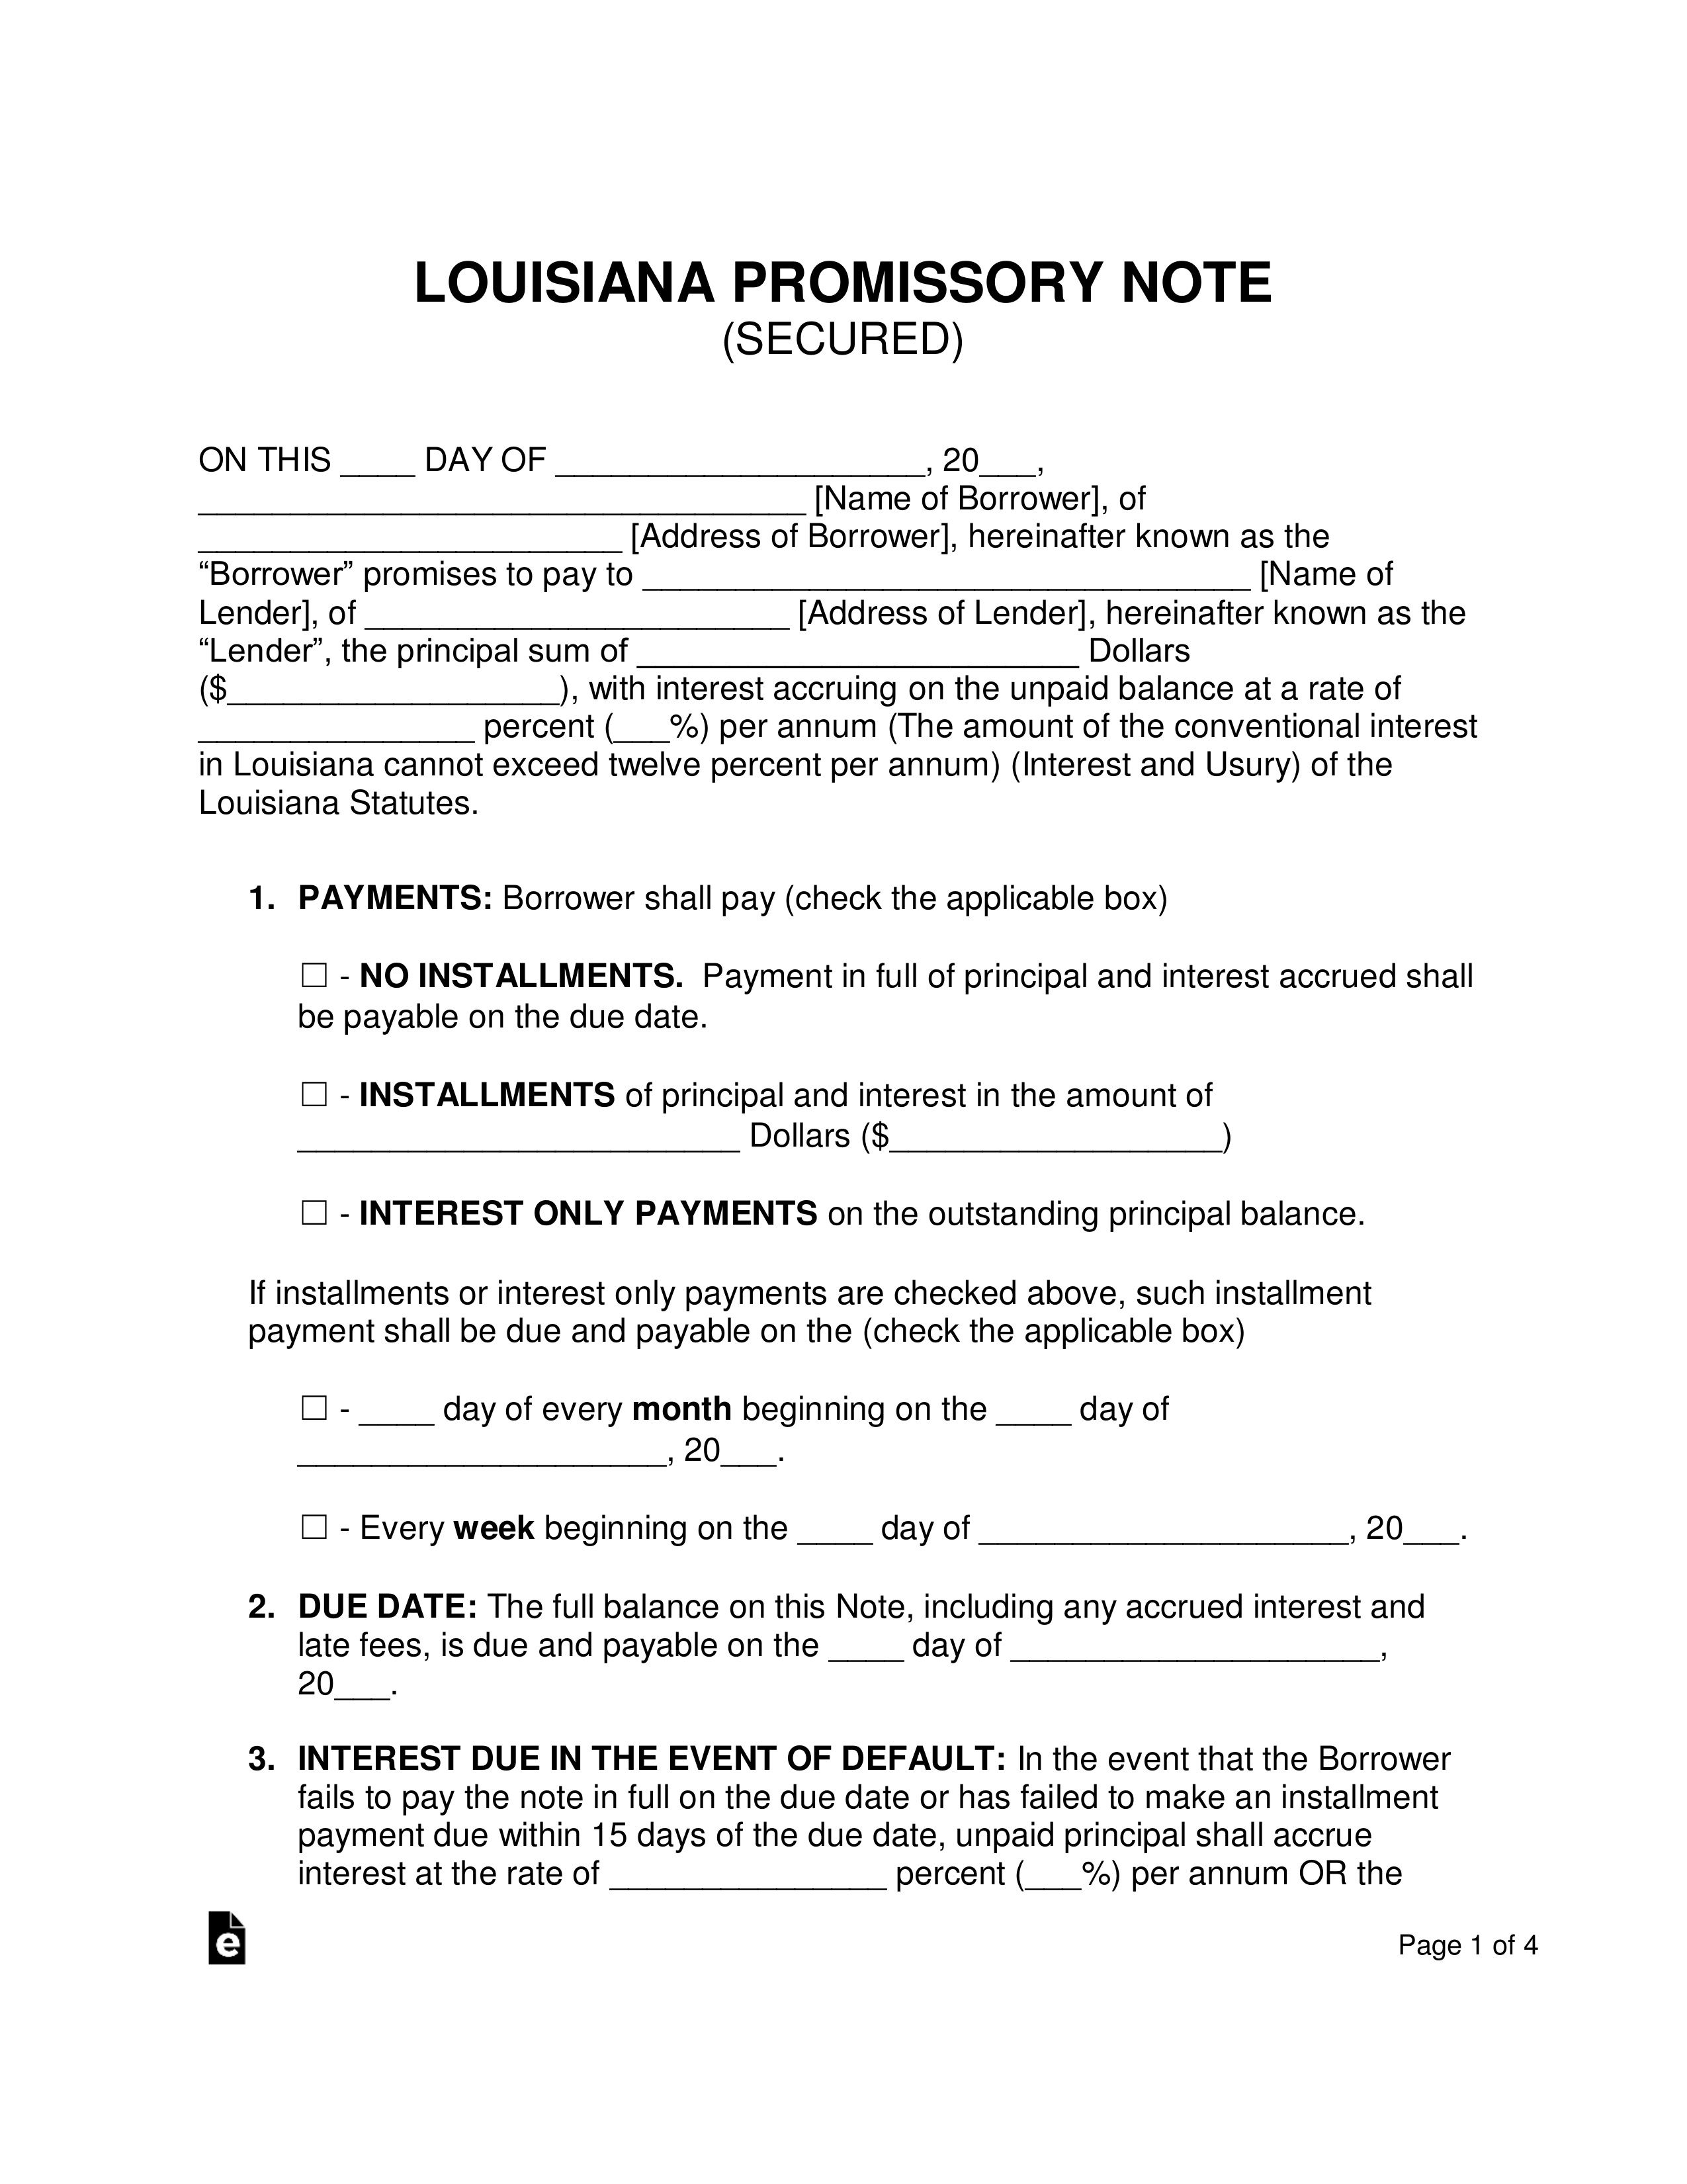 002 Wonderful Loan Promissory Note Template High Resolution  Ppp Form Personal Format StudentFull